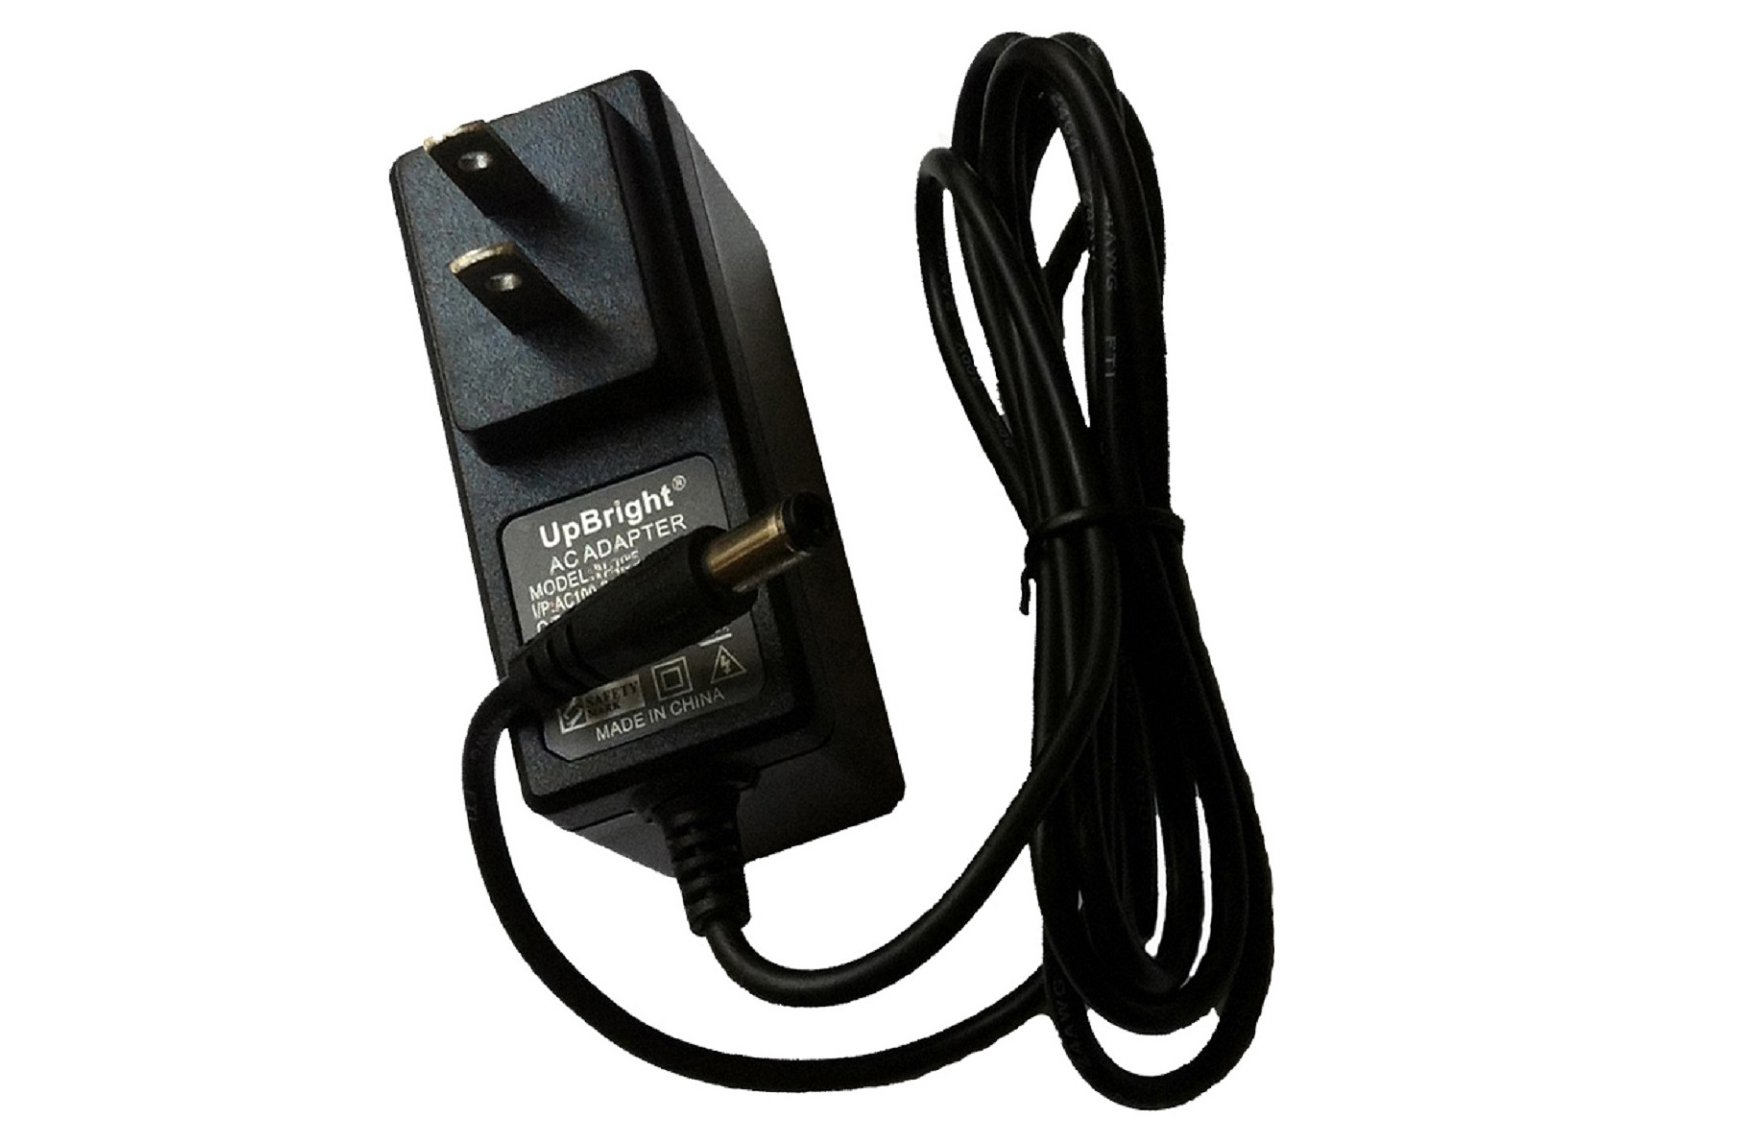 UpBright 9V AC/DC Adapter For Optimus MD-1160 MD-1150 Cat.No 42-4035 42-4039 410 42-4031 970 42-4032 690 42-4035 Concertmate 990 1000 1000M 1070 660 670 680 900 980 RadioShack Keyboard 9VDC Charger